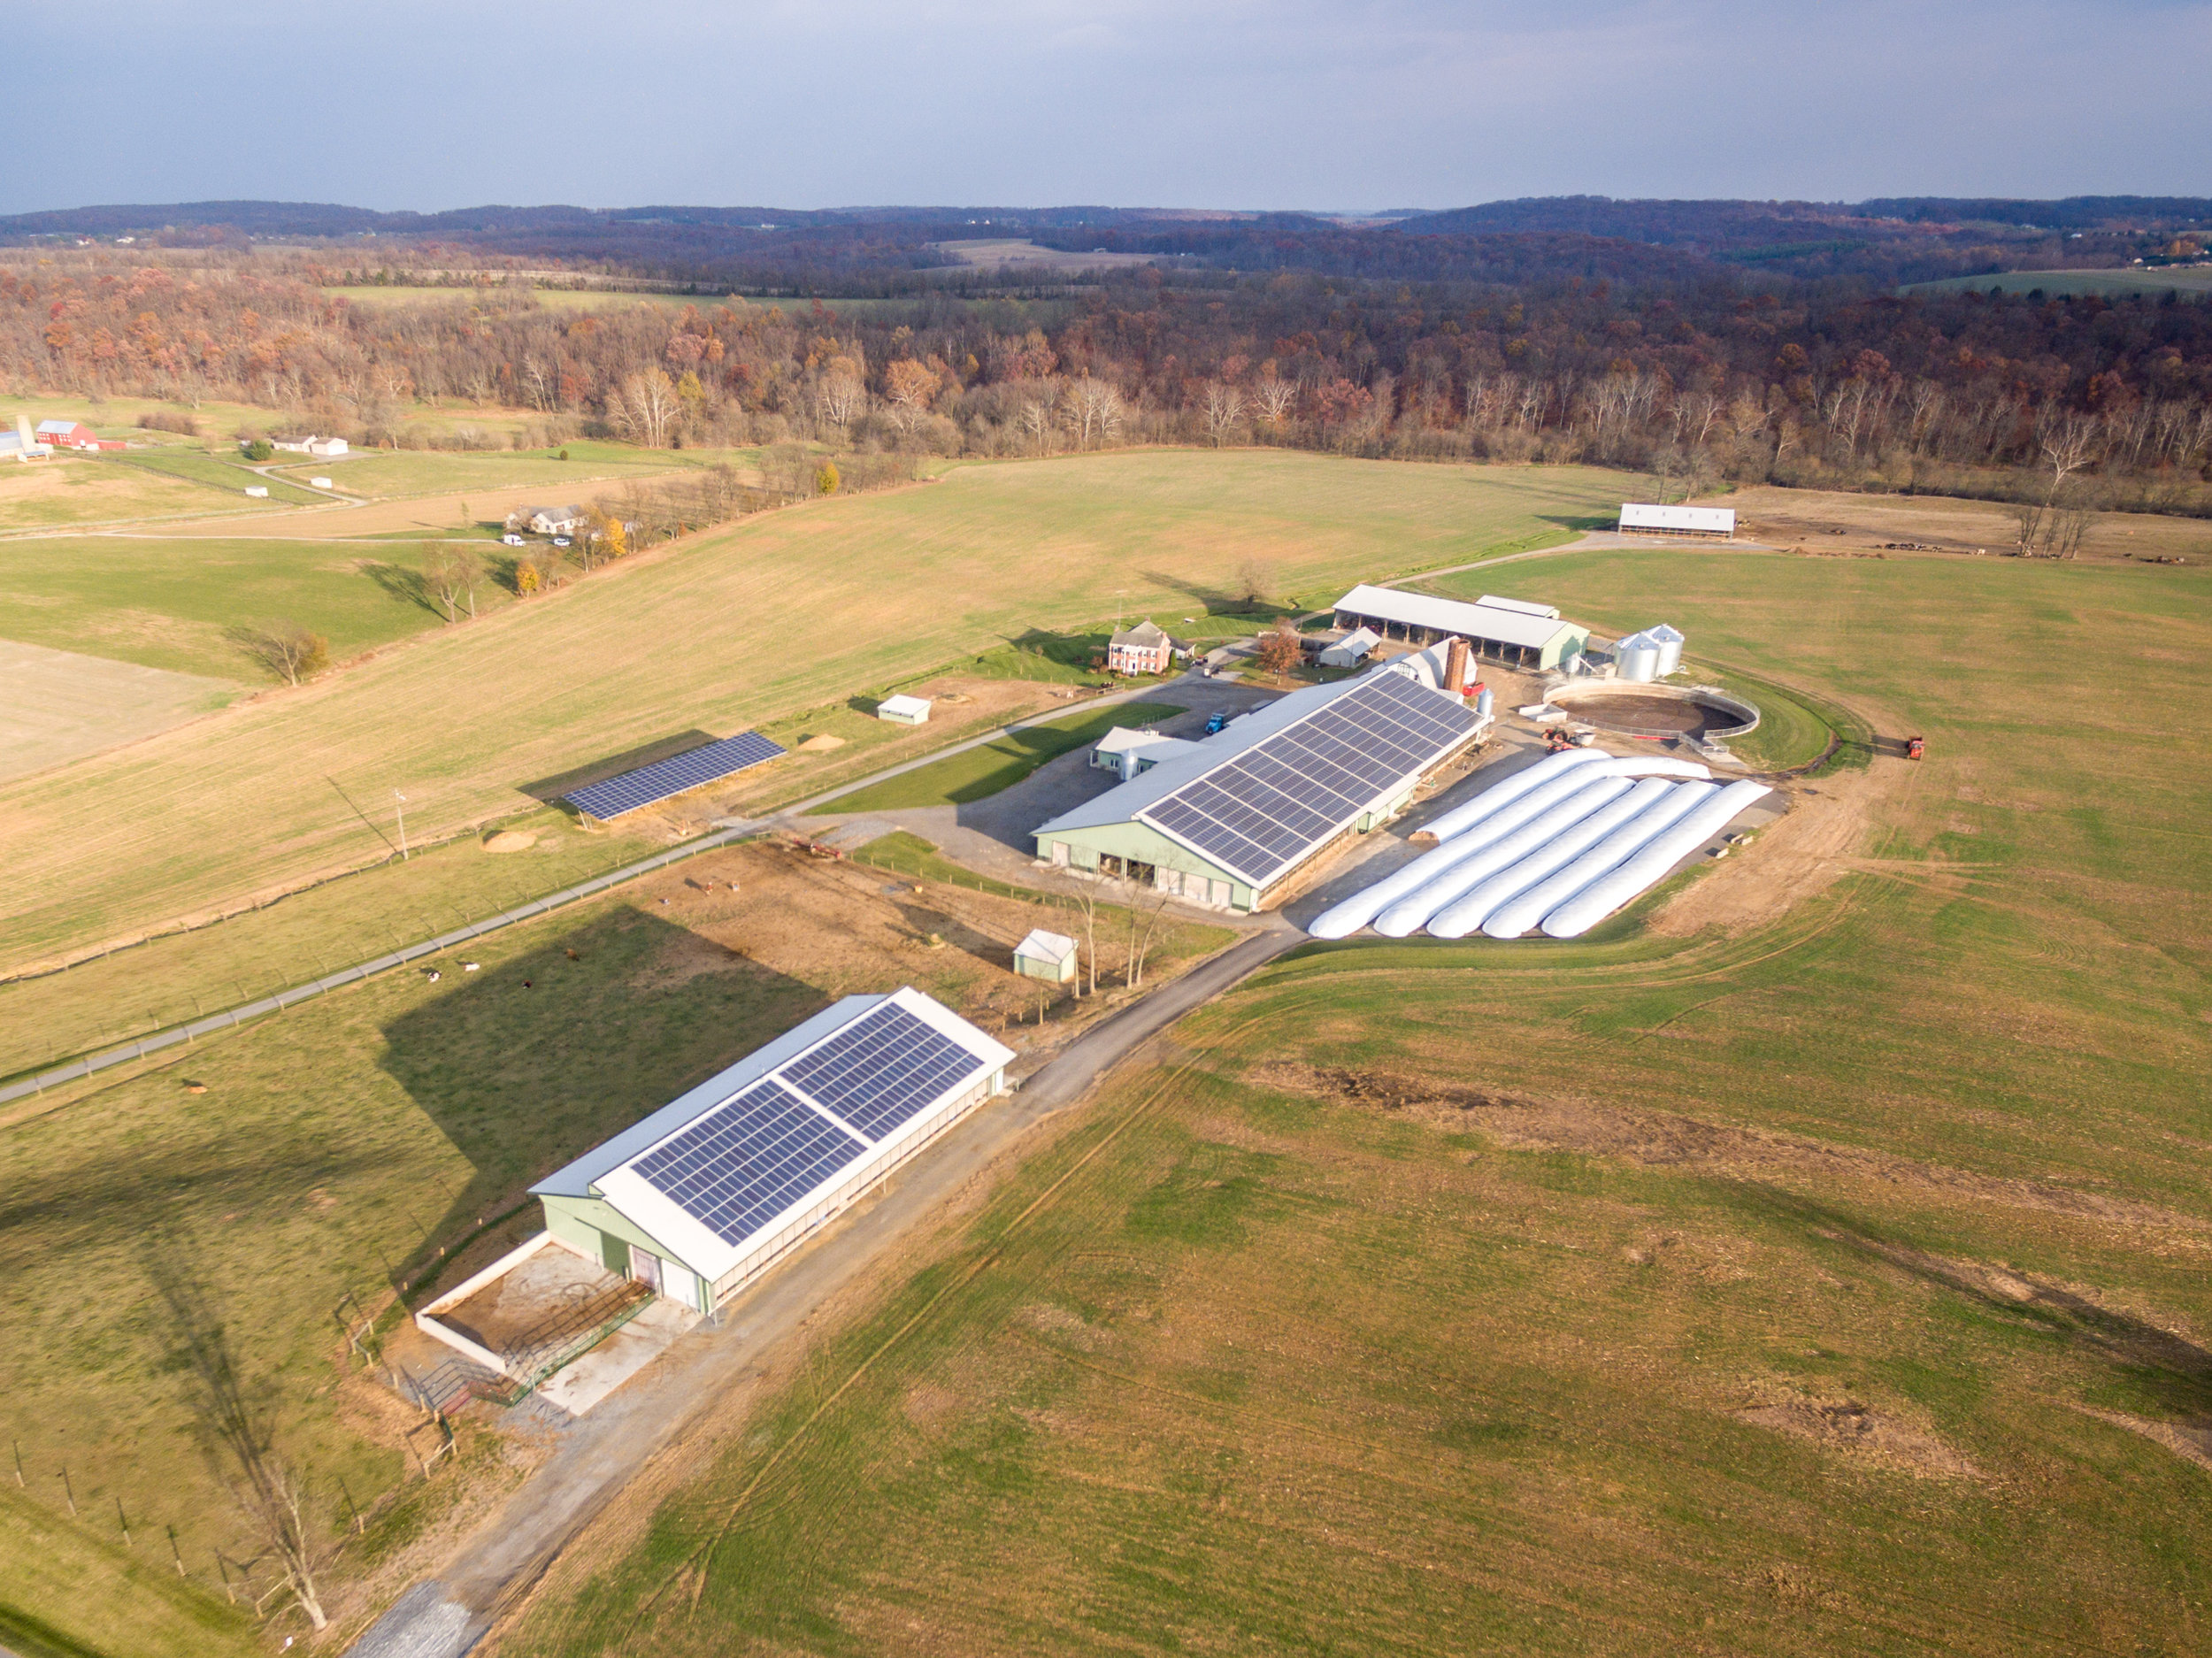 Aerial image of a dairy in Maryland.  Image by Edwin Remsberg